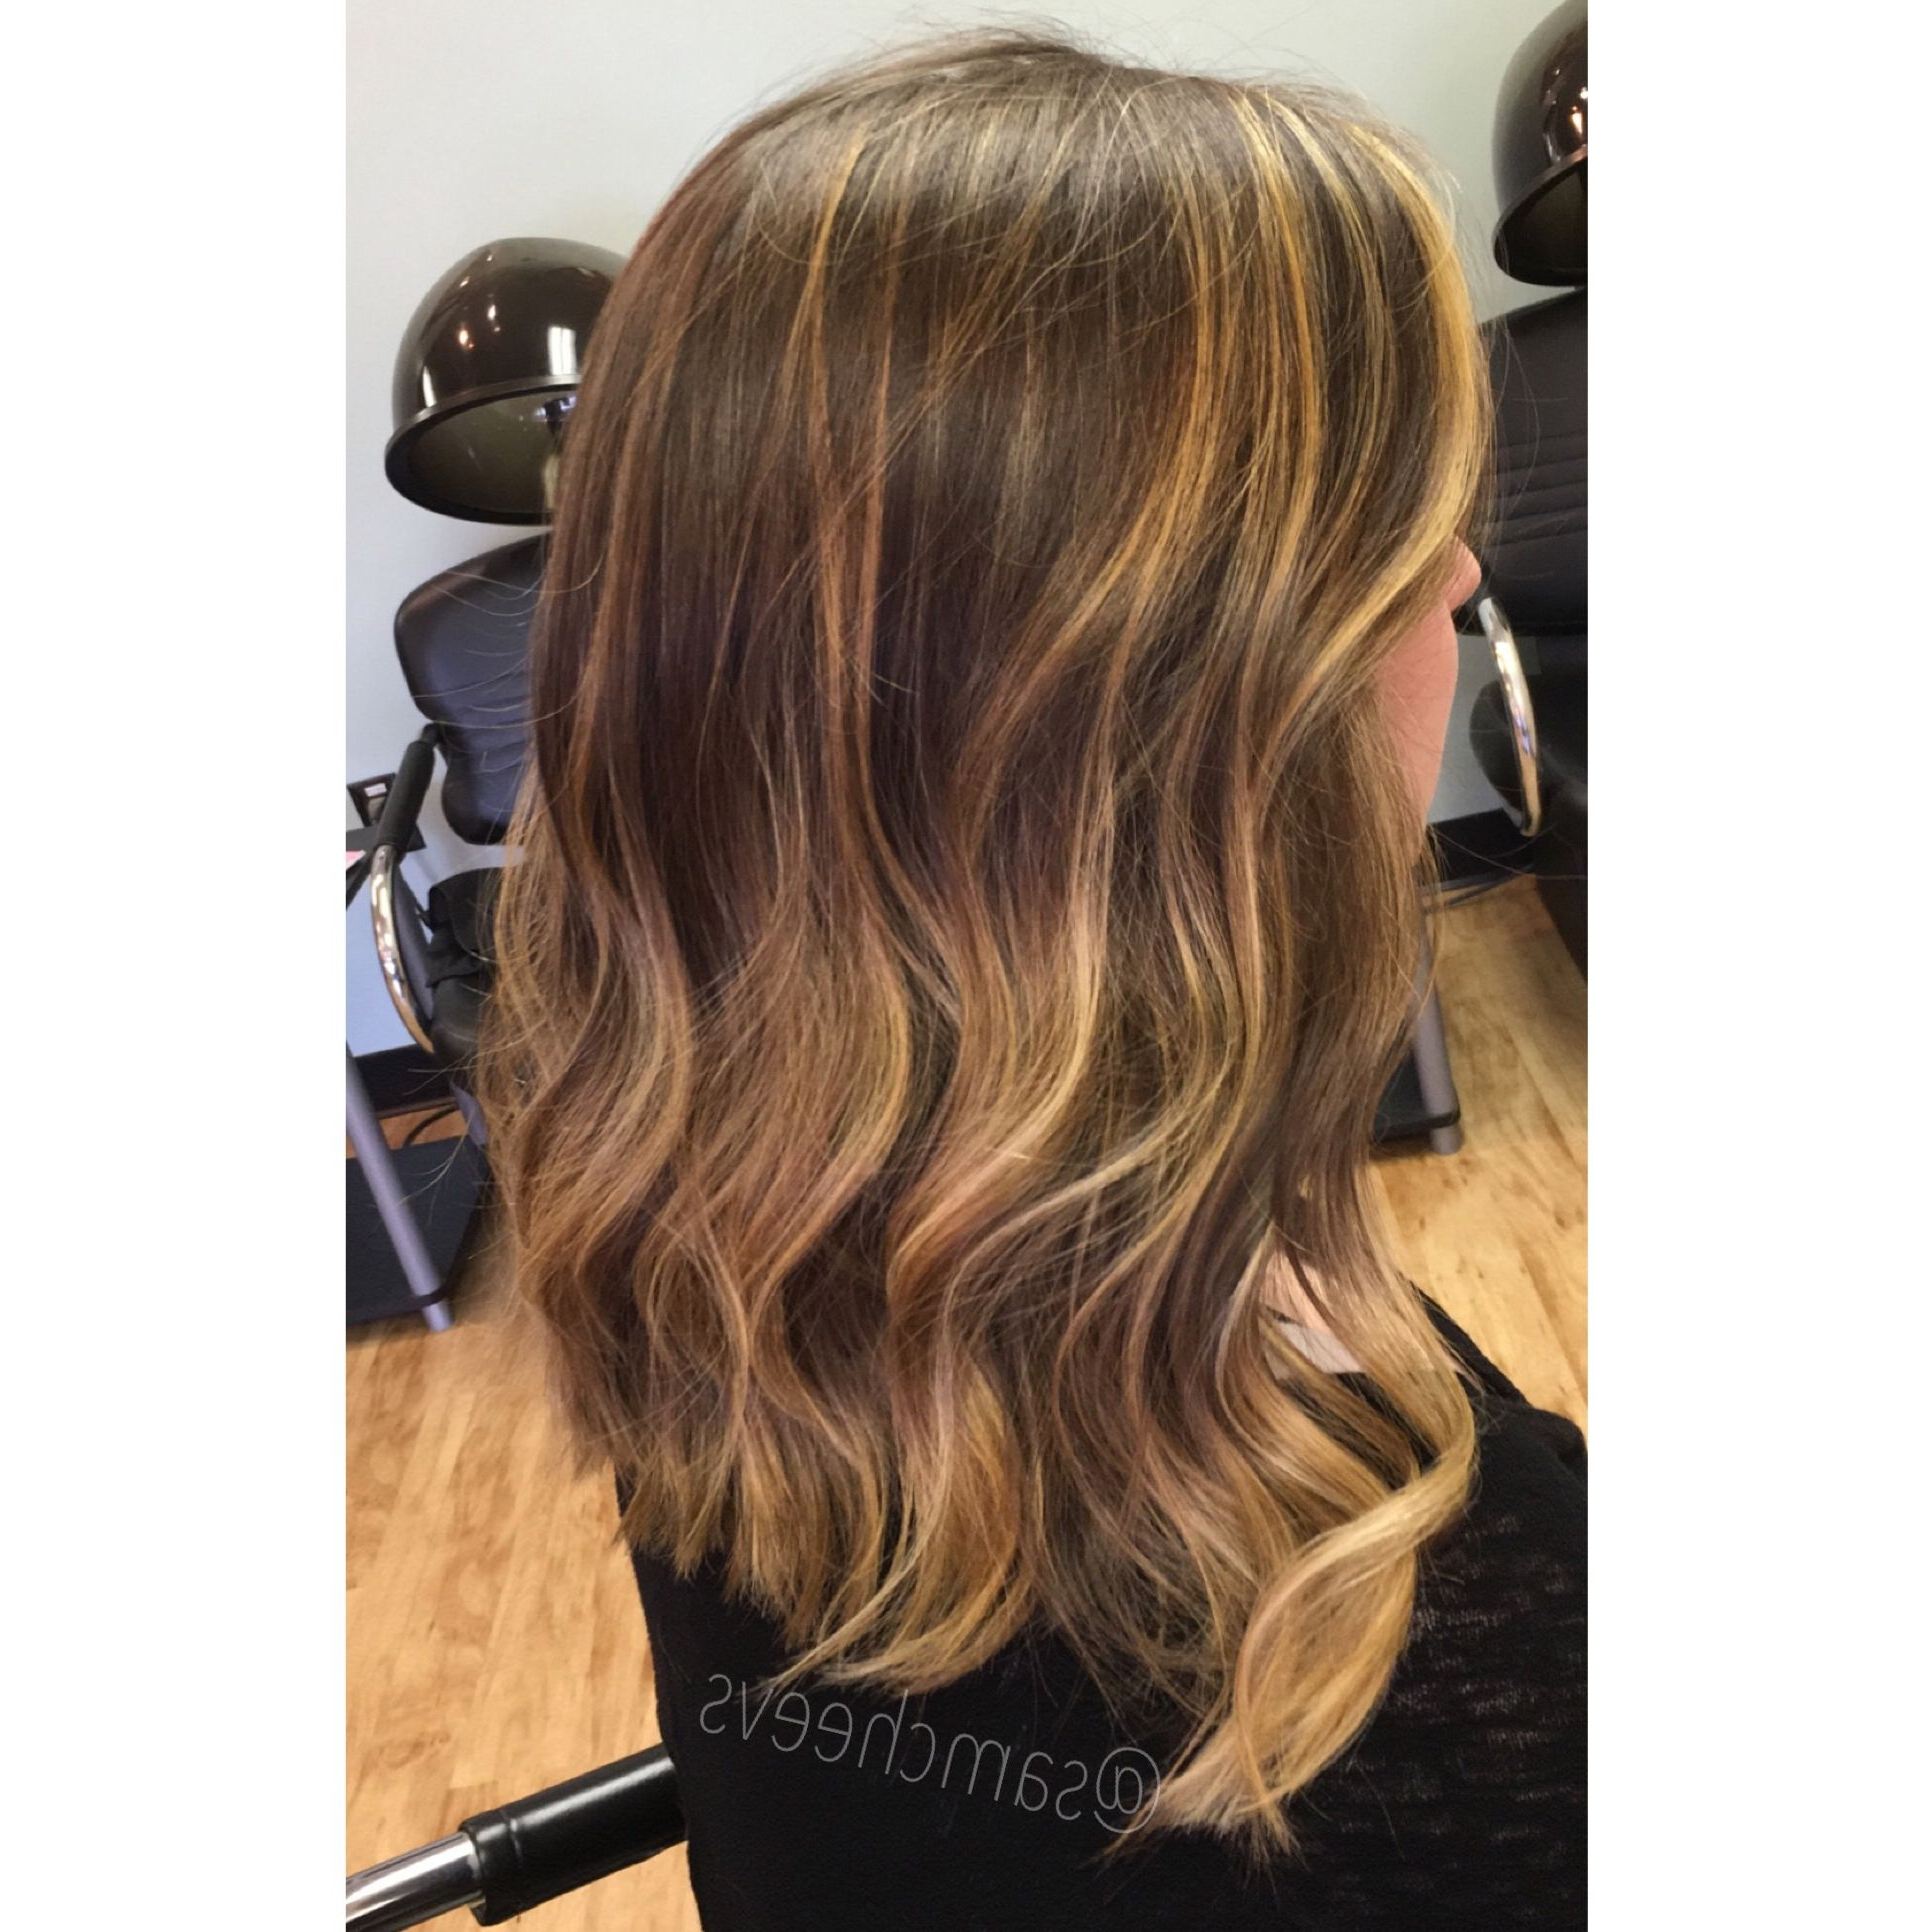 Newest Long Bob Blonde Hairstyles With Babylights Throughout Awesome Honey Blonde Highlights For Brown Hair Long Bob Cut Image (View 12 of 20)